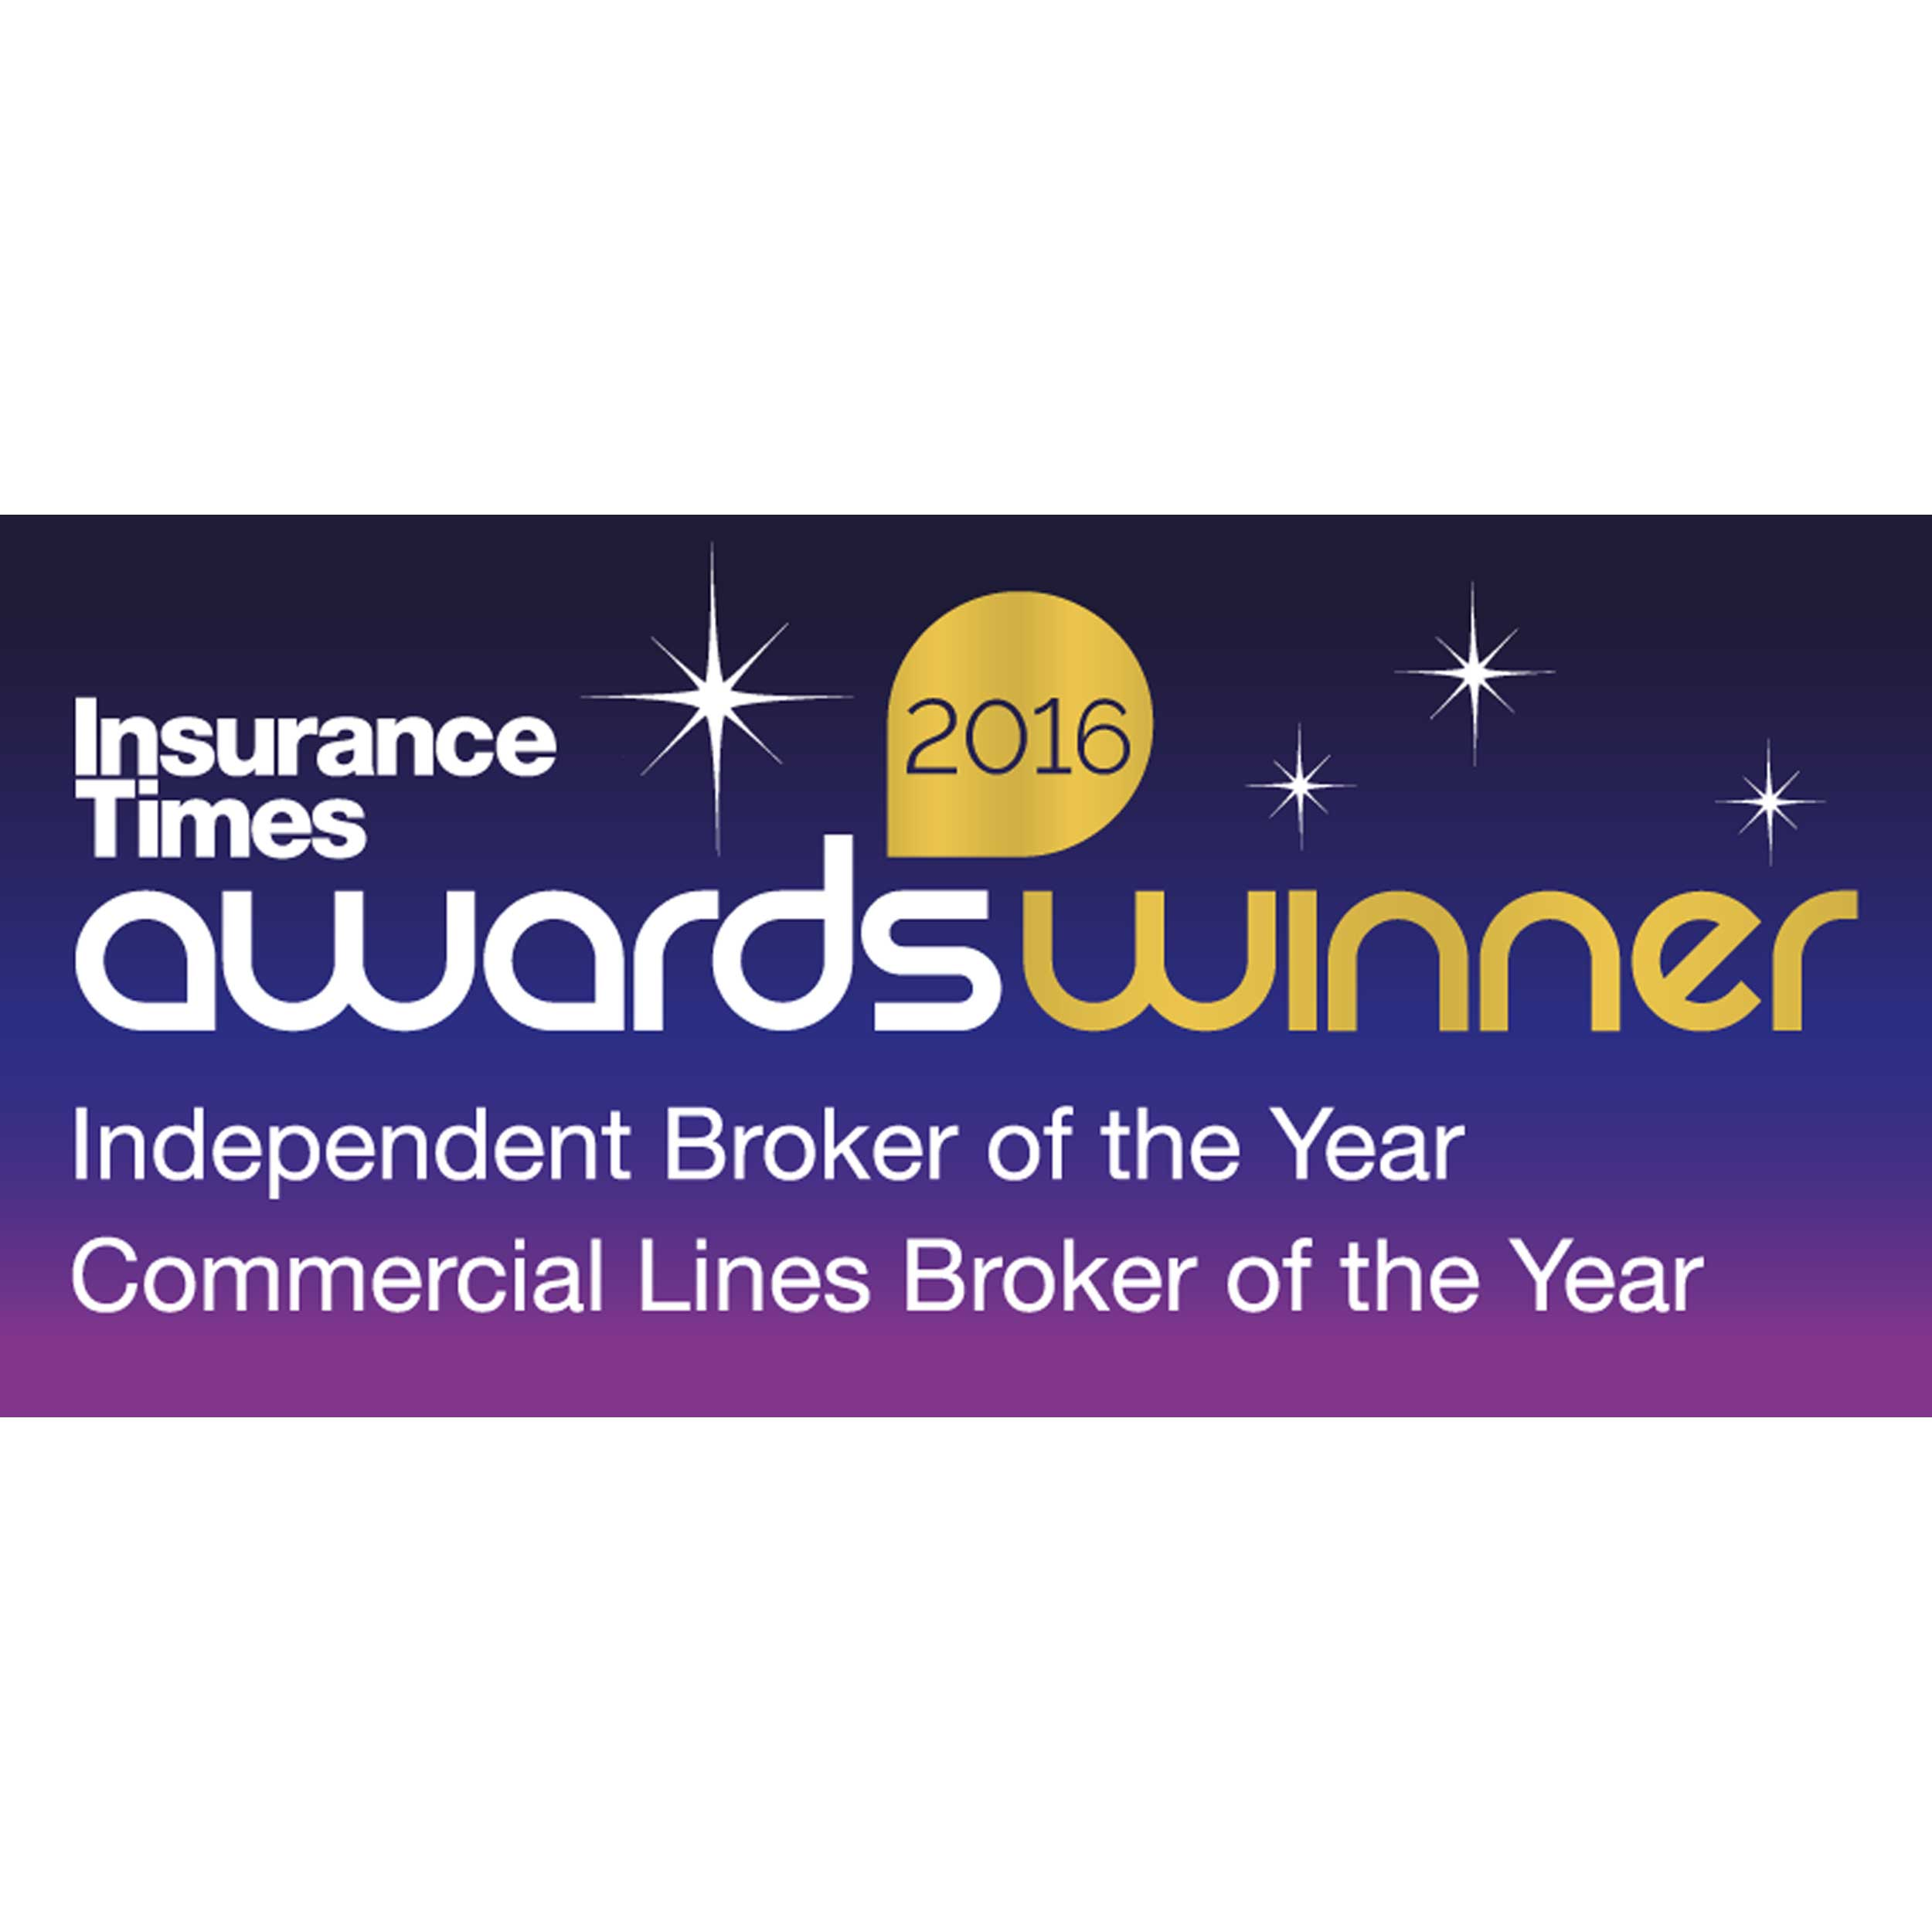 Insure Times Awards Winner